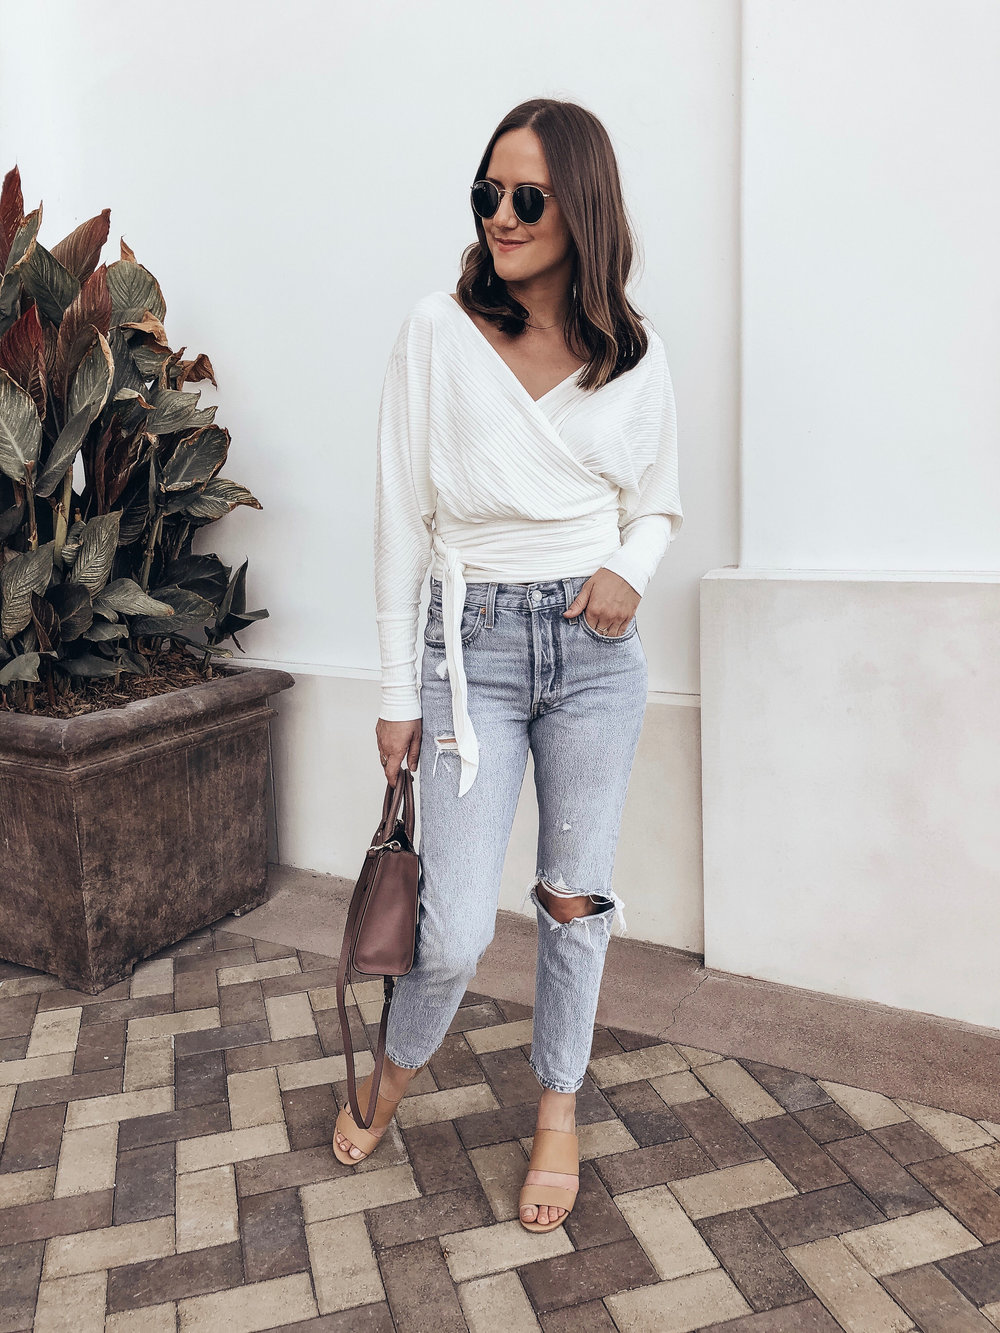 wrap top and jeans